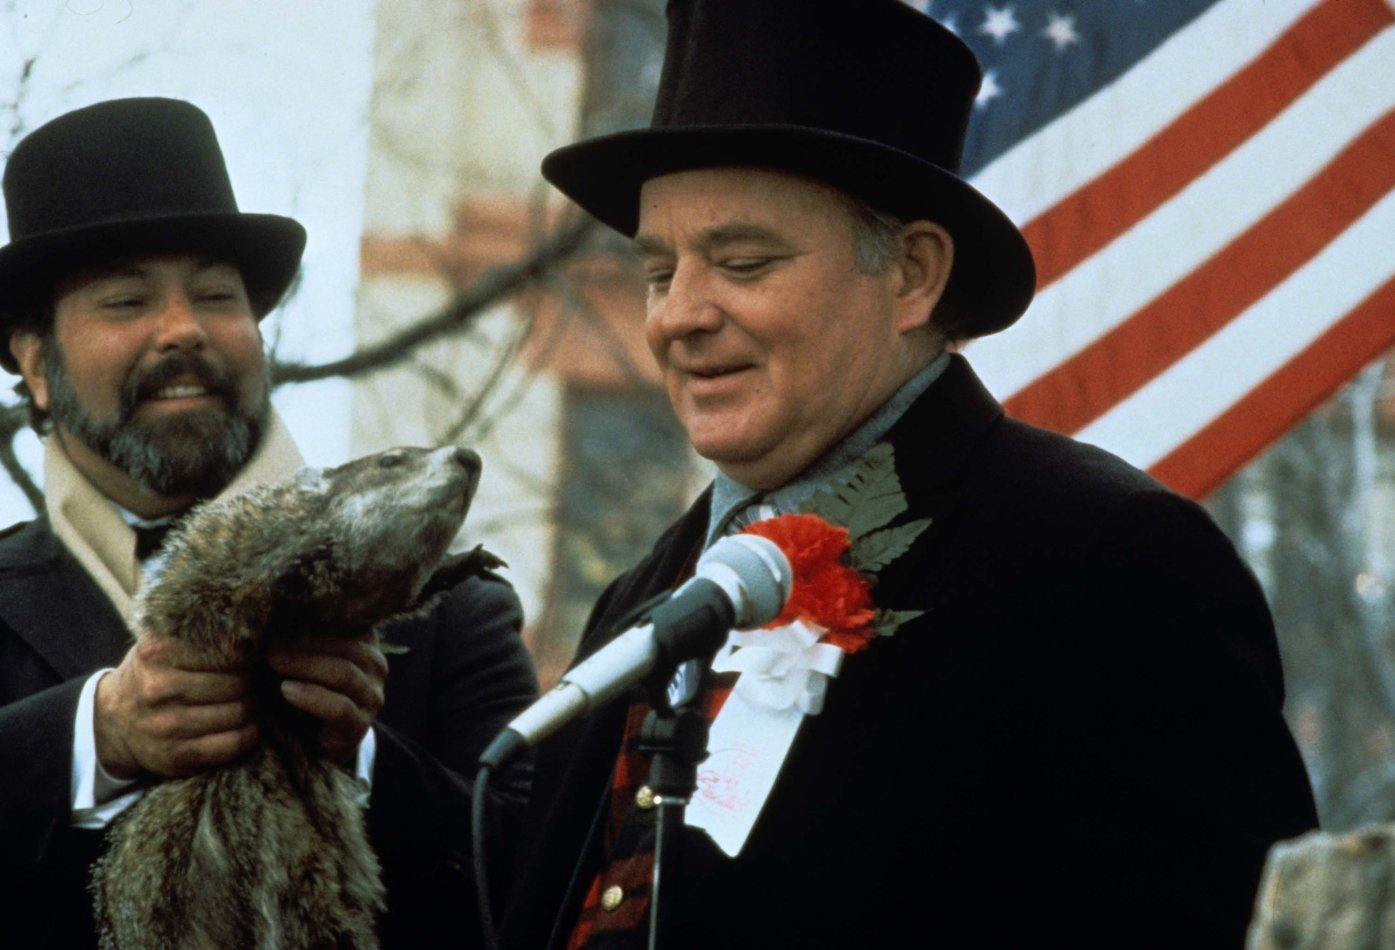 Groundhog Day Wallpapers High Quality Download 1395x950